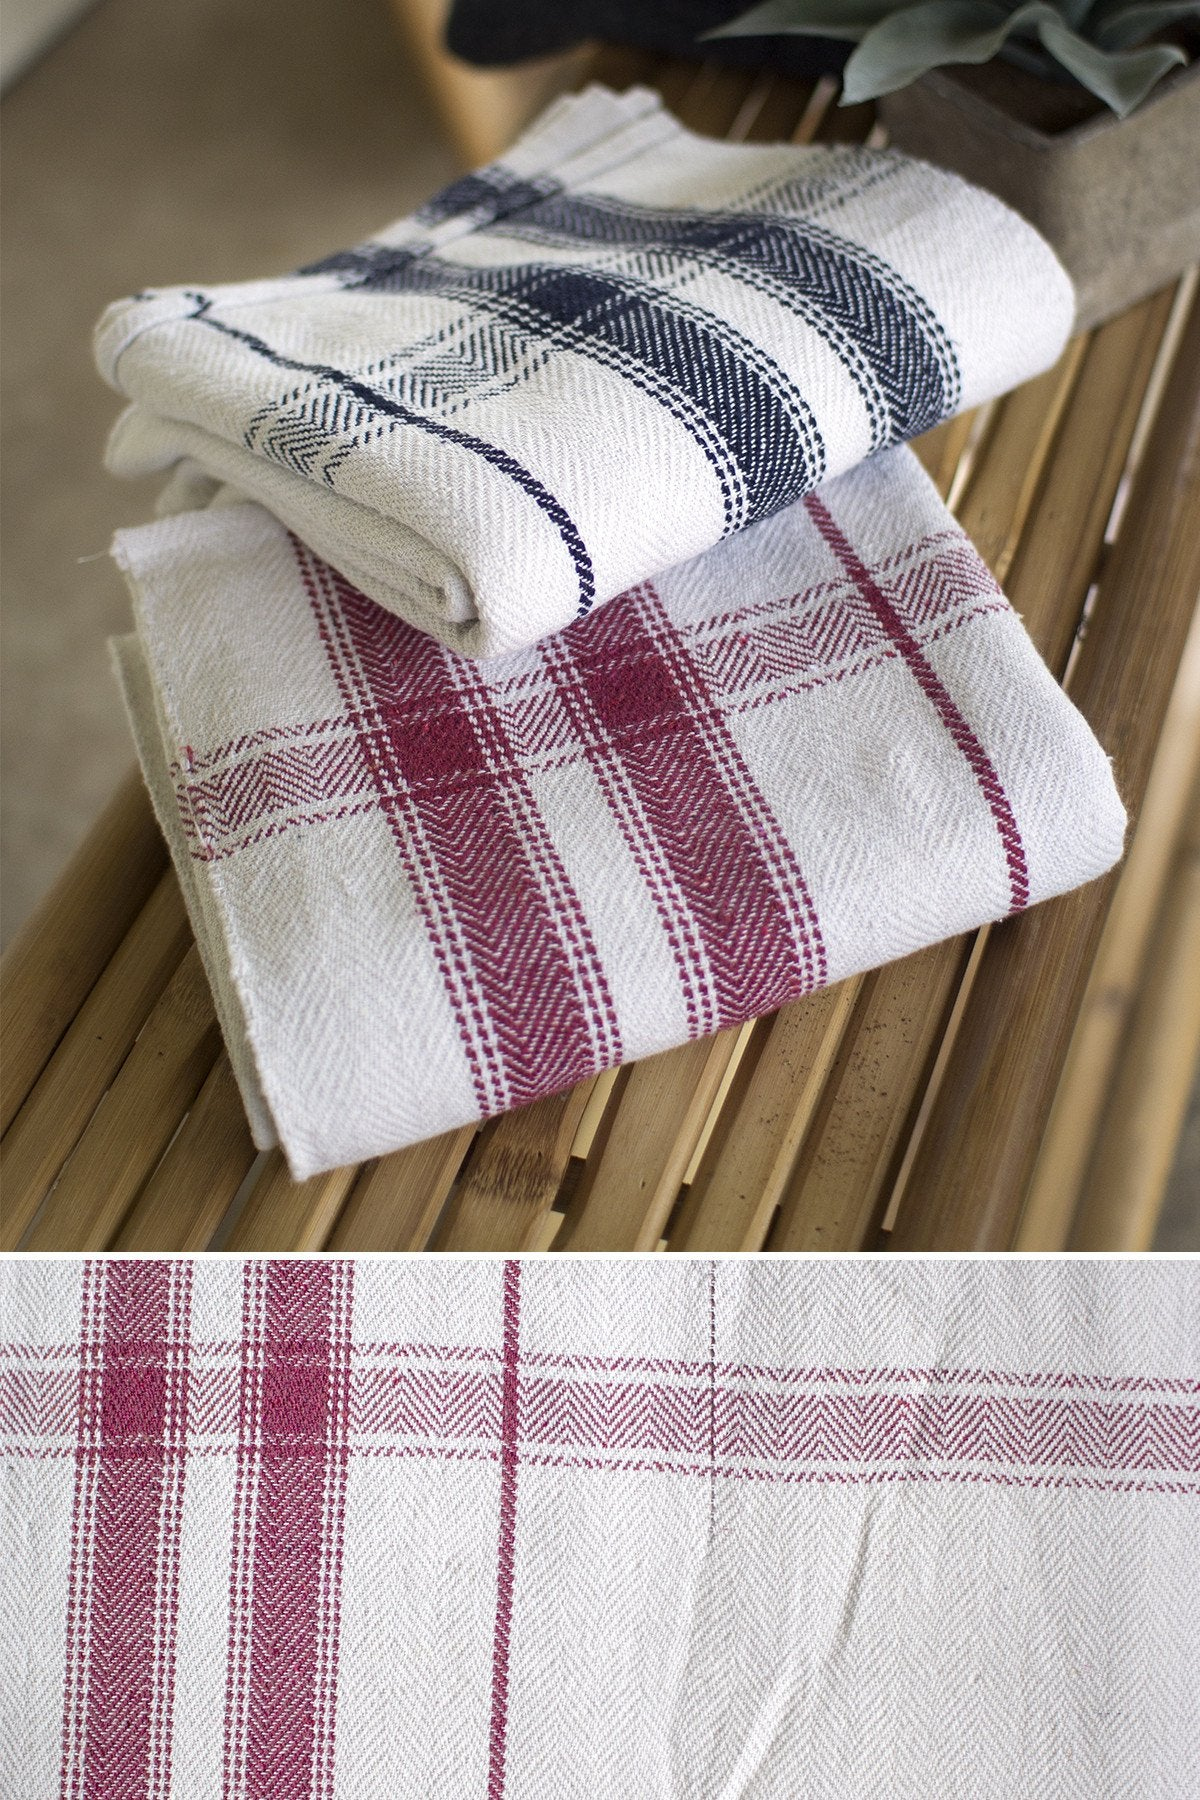 Kalalou Cotton Blanket -Table Cloth - Set Of 2